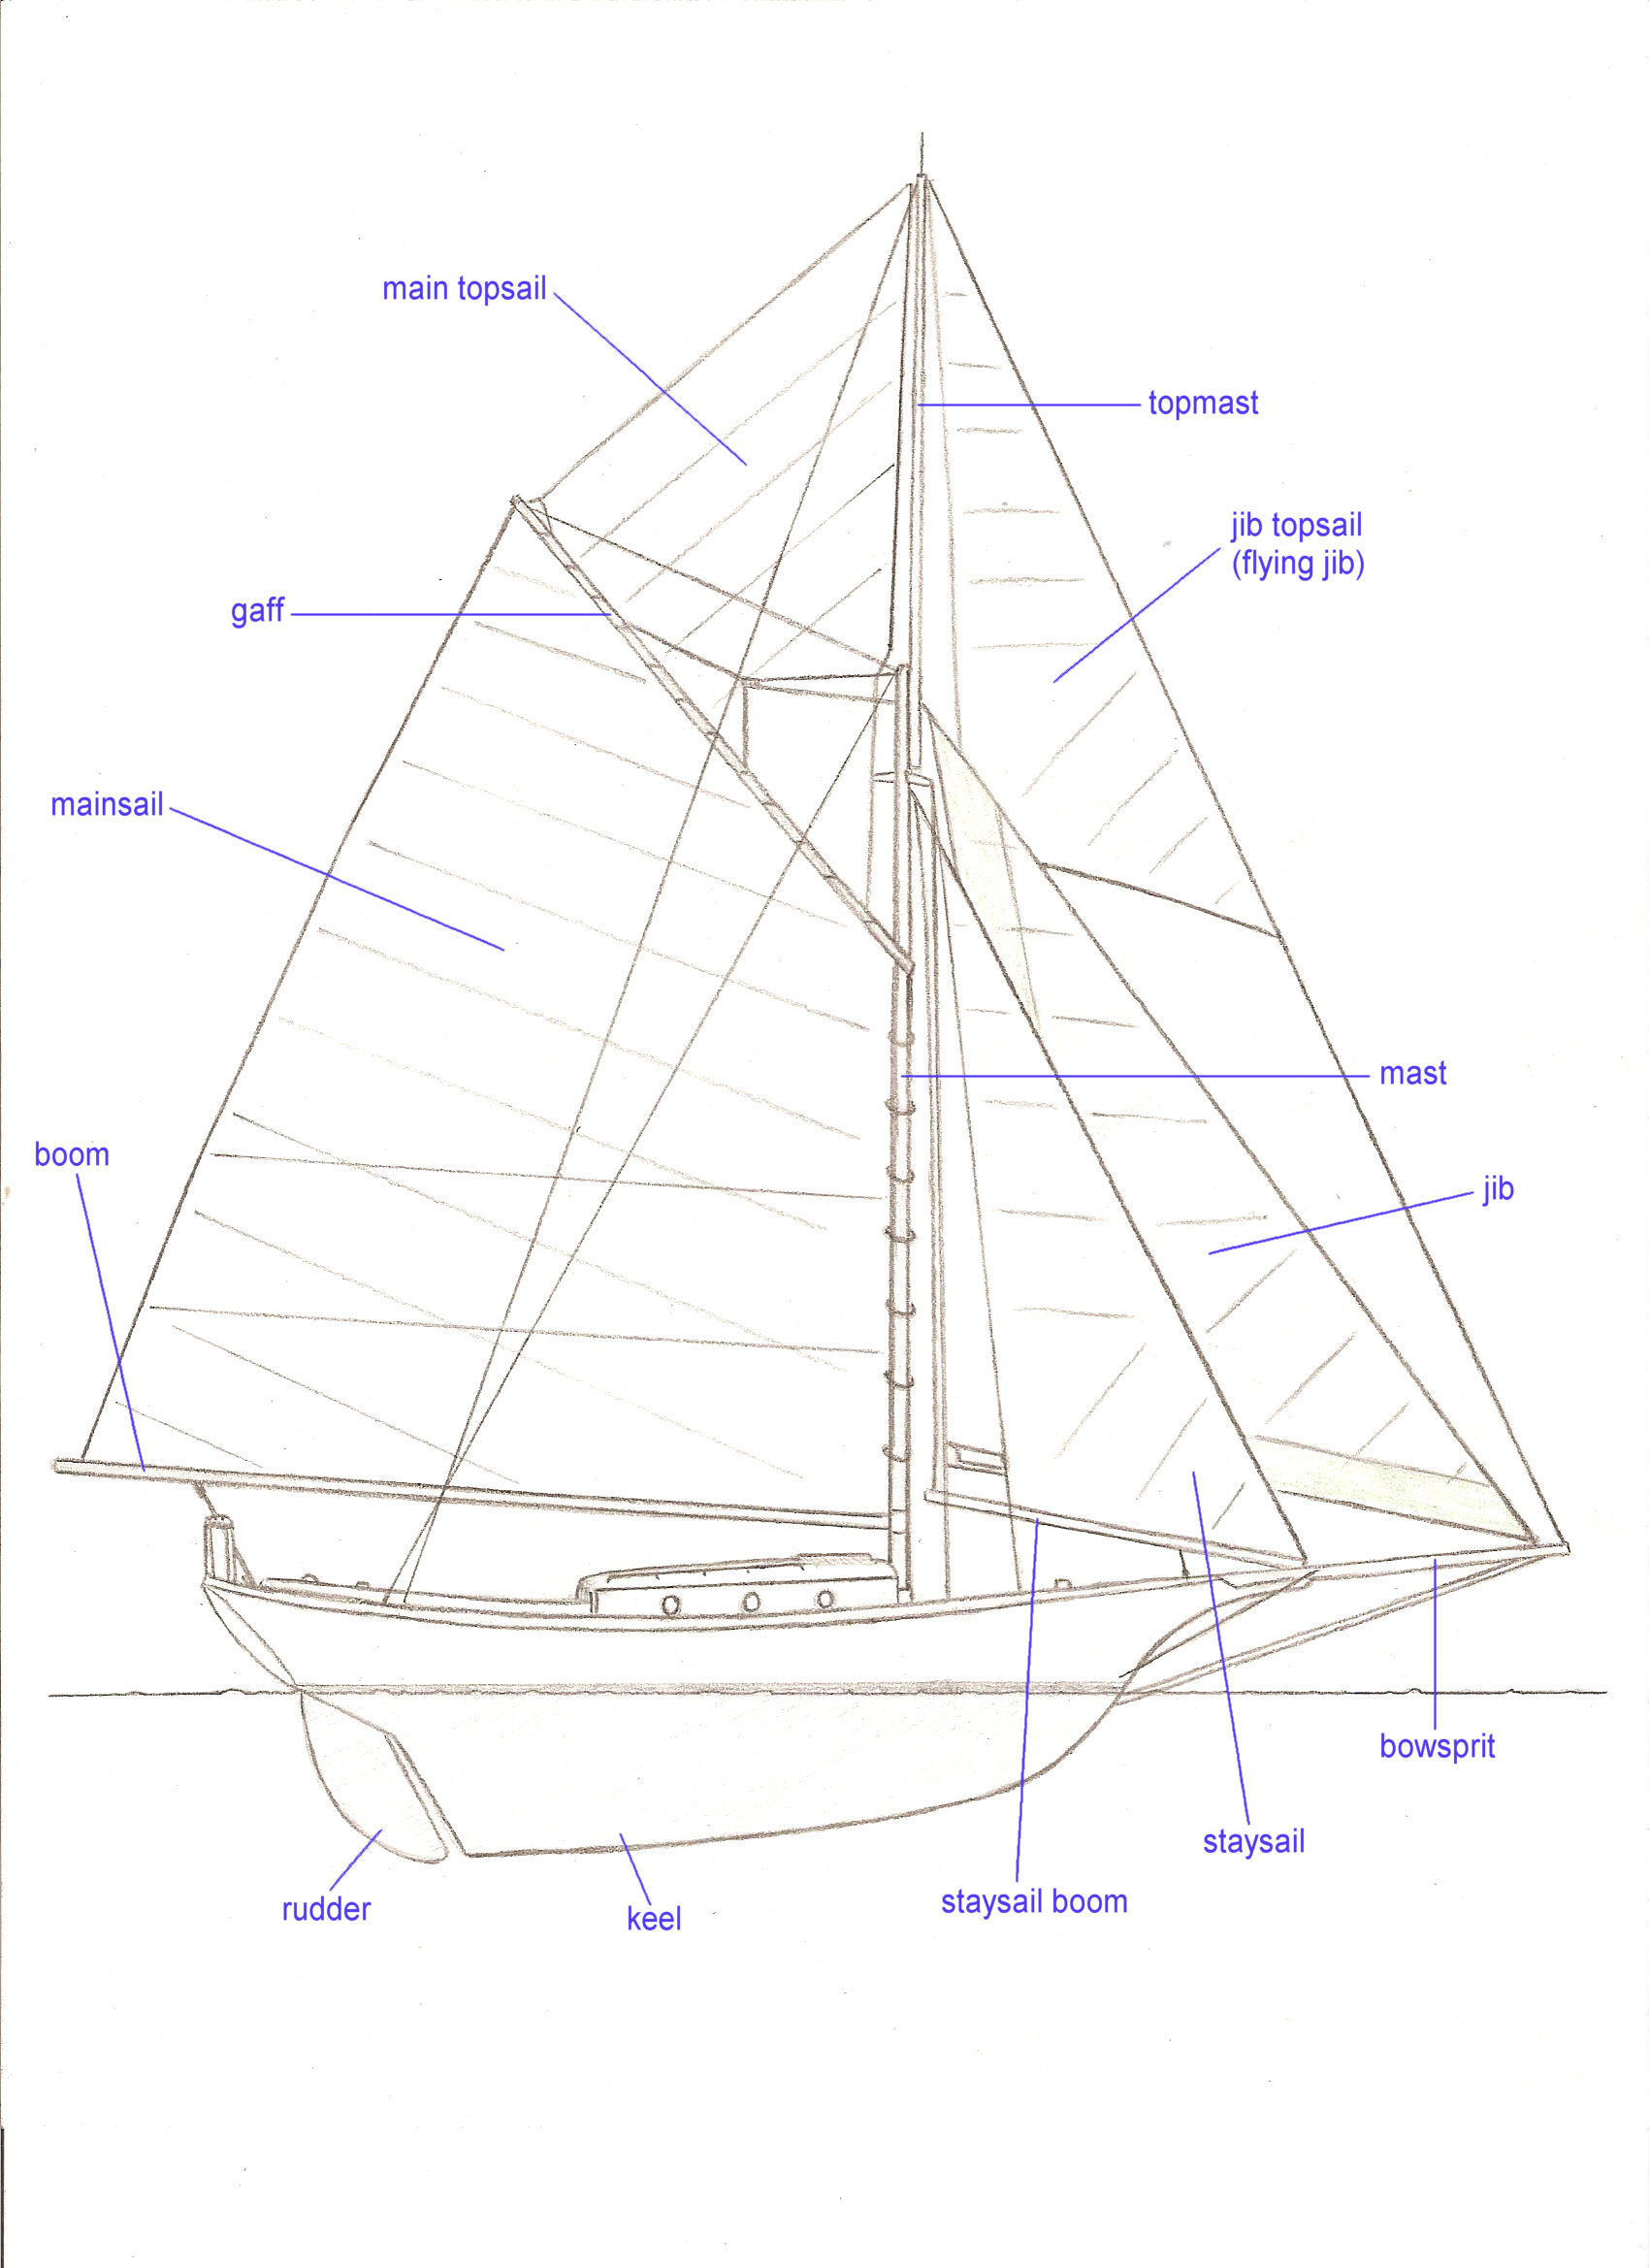 File Friendship Sloop Diagram